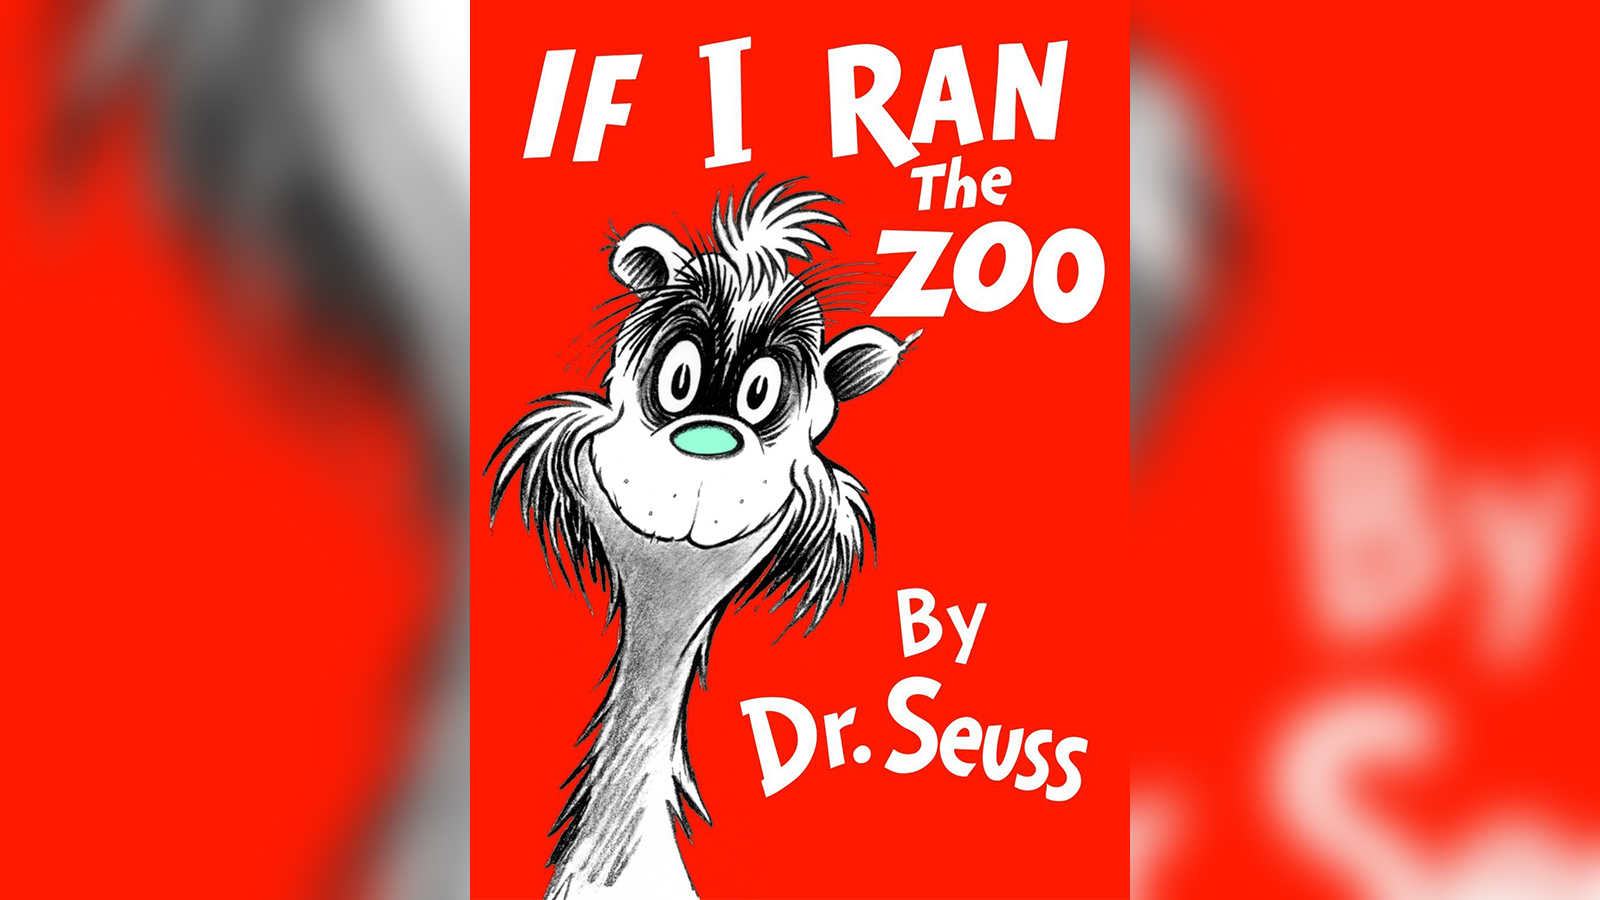 6 Dr. Seuss books won't be published anymore because they portray people in 'hurtful and wrong' ways